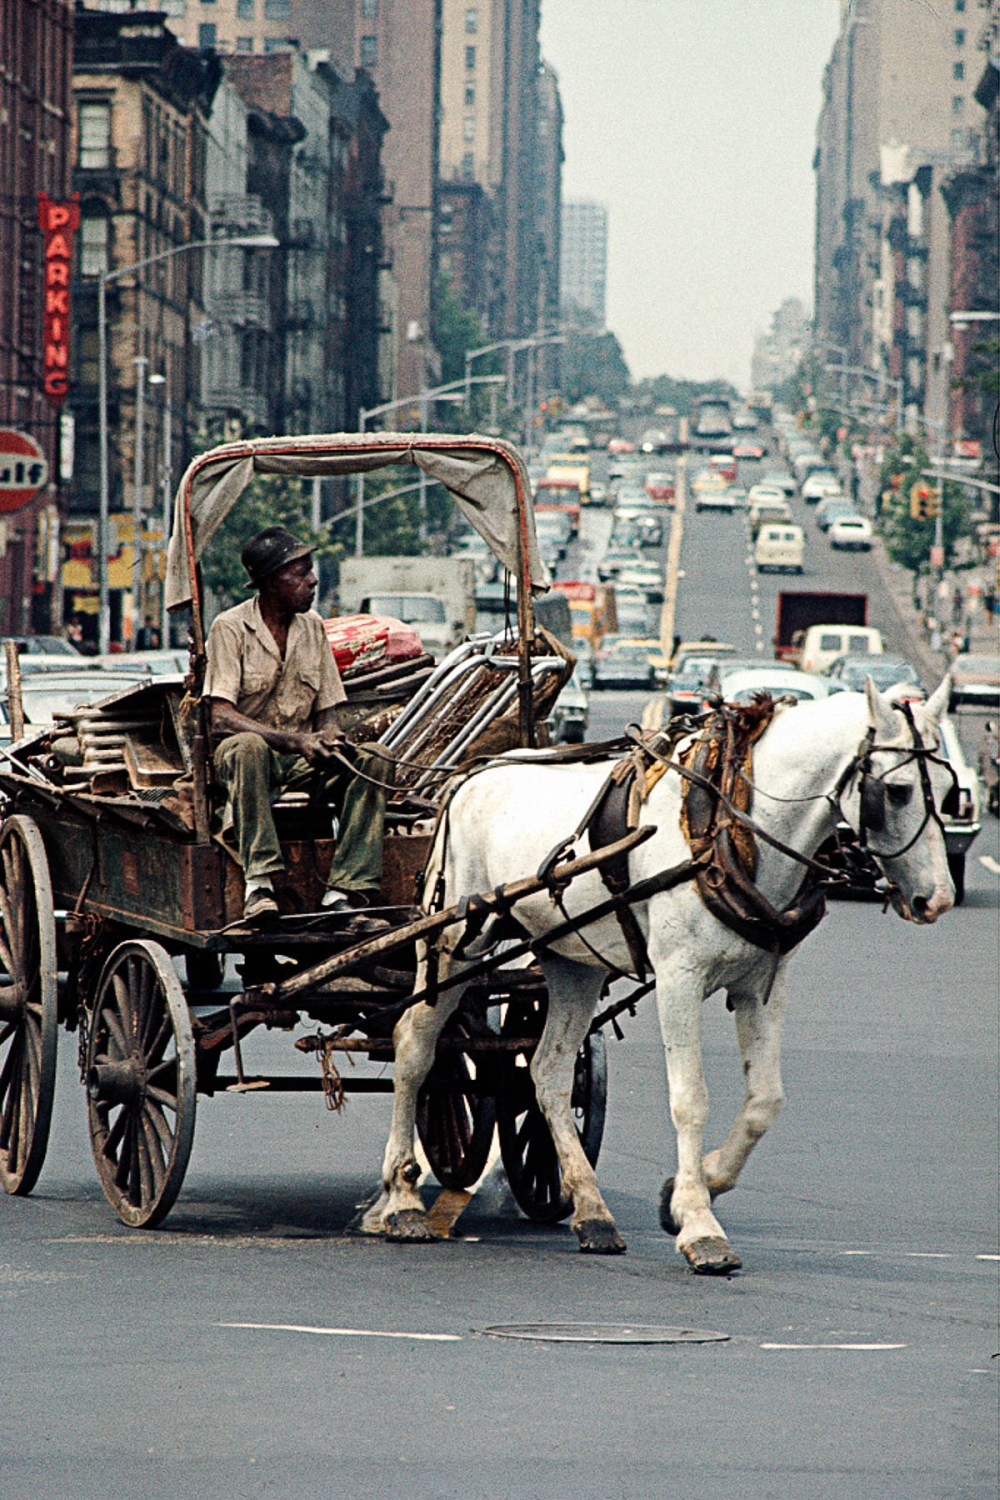 On the Way to Harlem, 1970